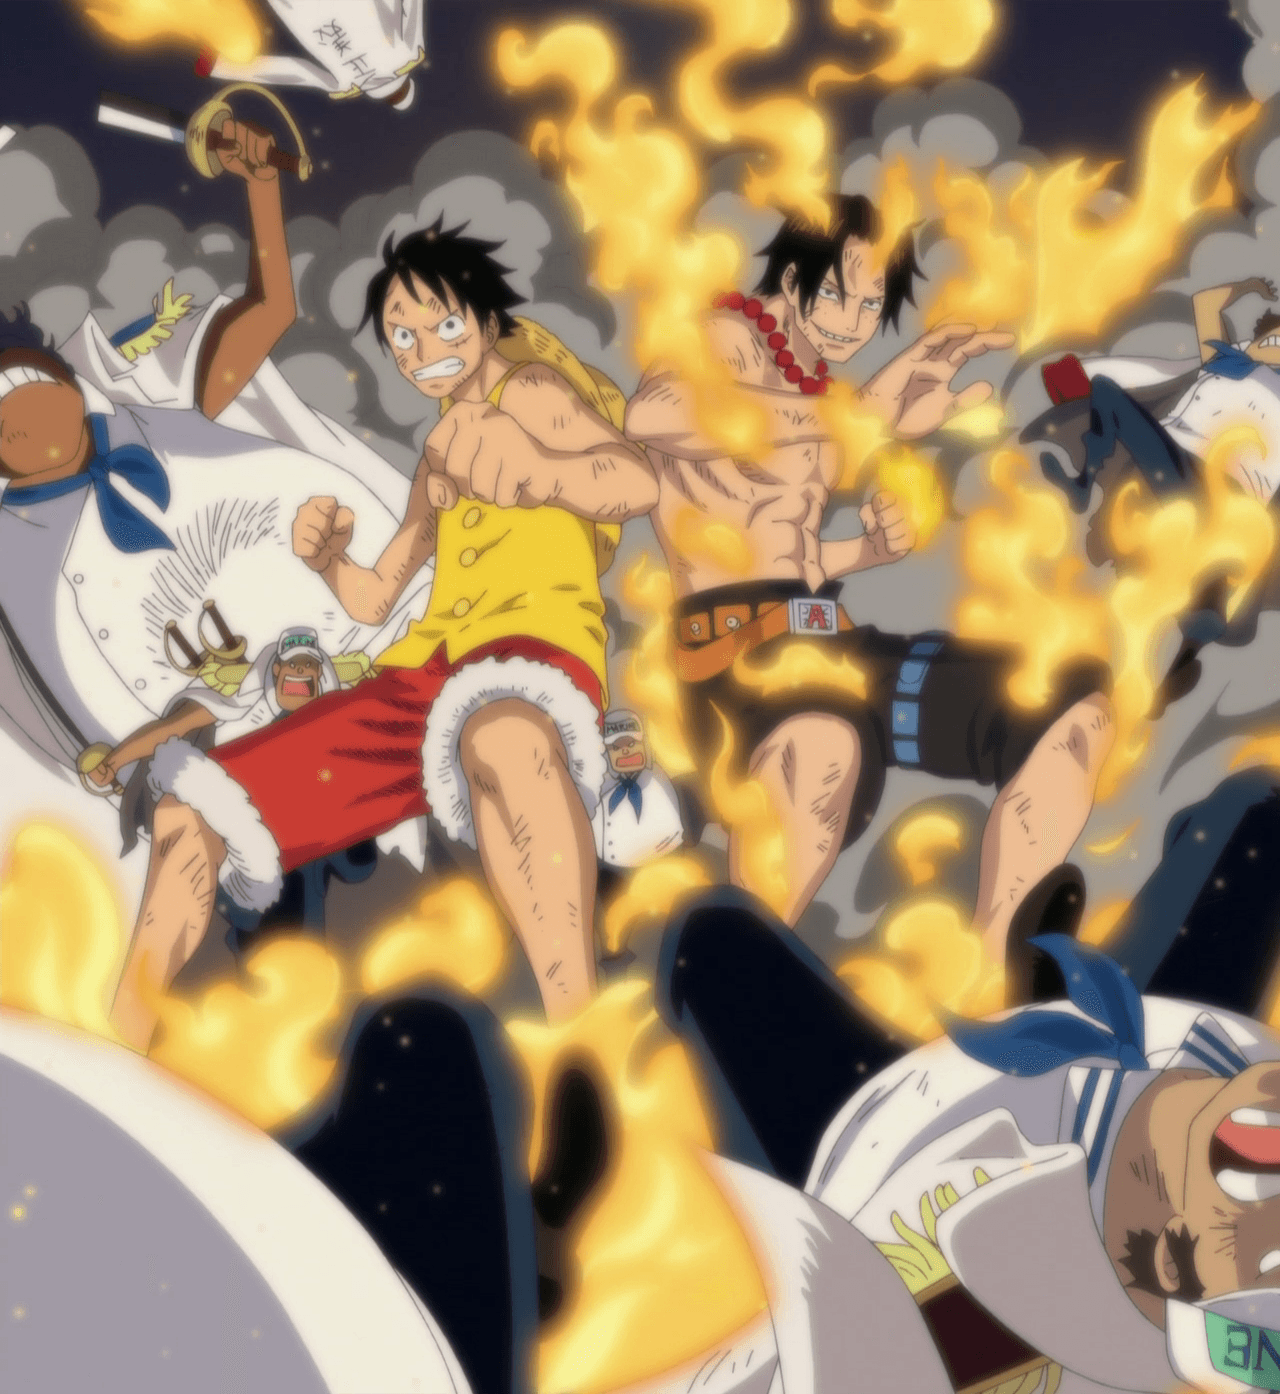 Ace And Luffy Fighting Against Marine Officers: Ace And Luffy Fighting Against Marine Officers.png